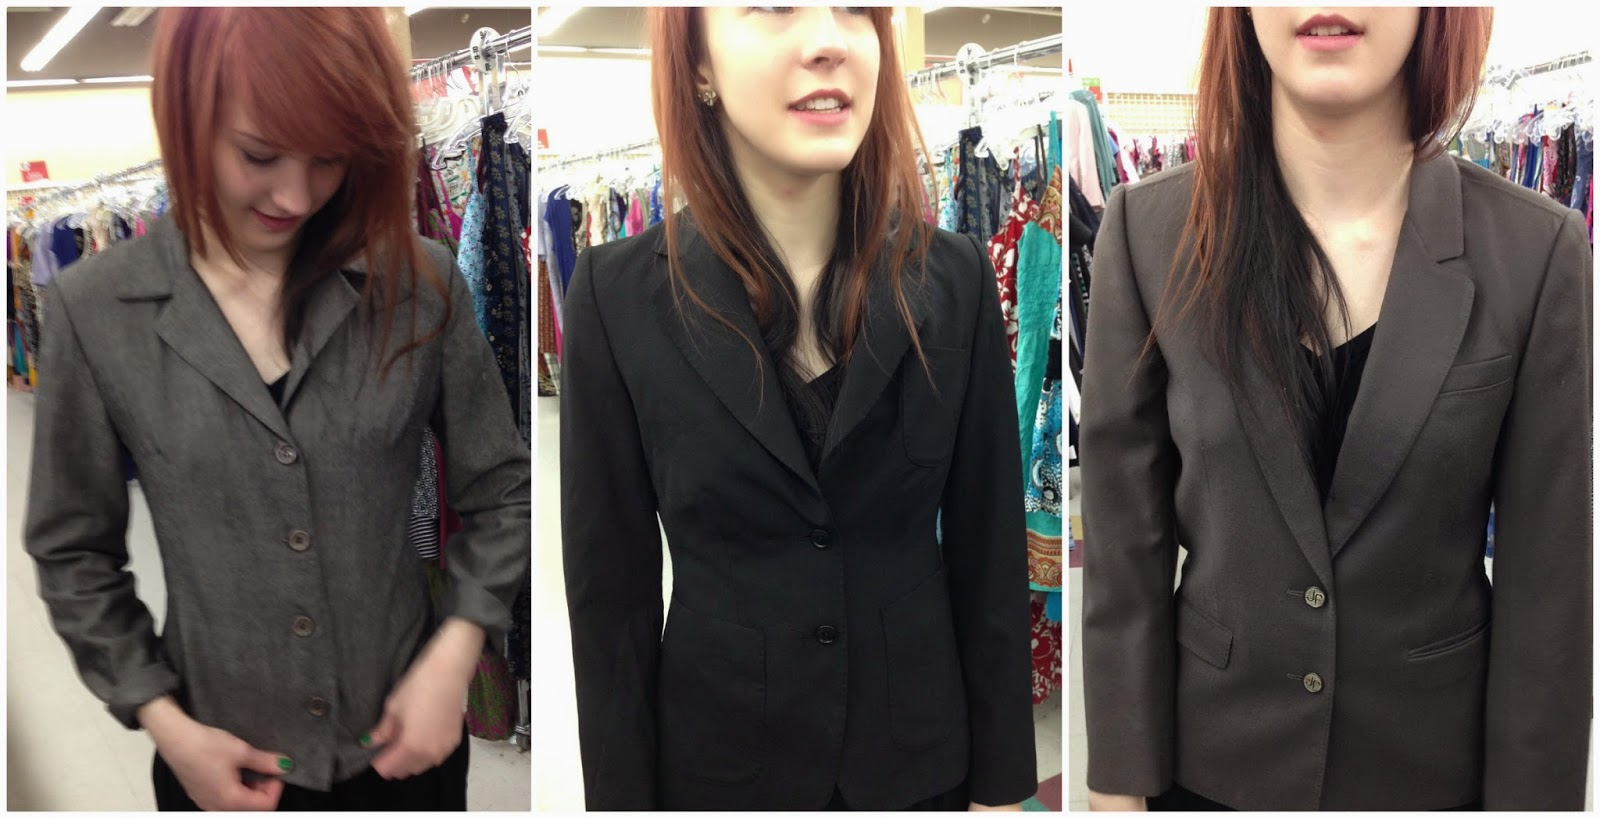 http://vvboutiquestyle.blogspot.ca/2014/05/thrifted-corporate-style.html